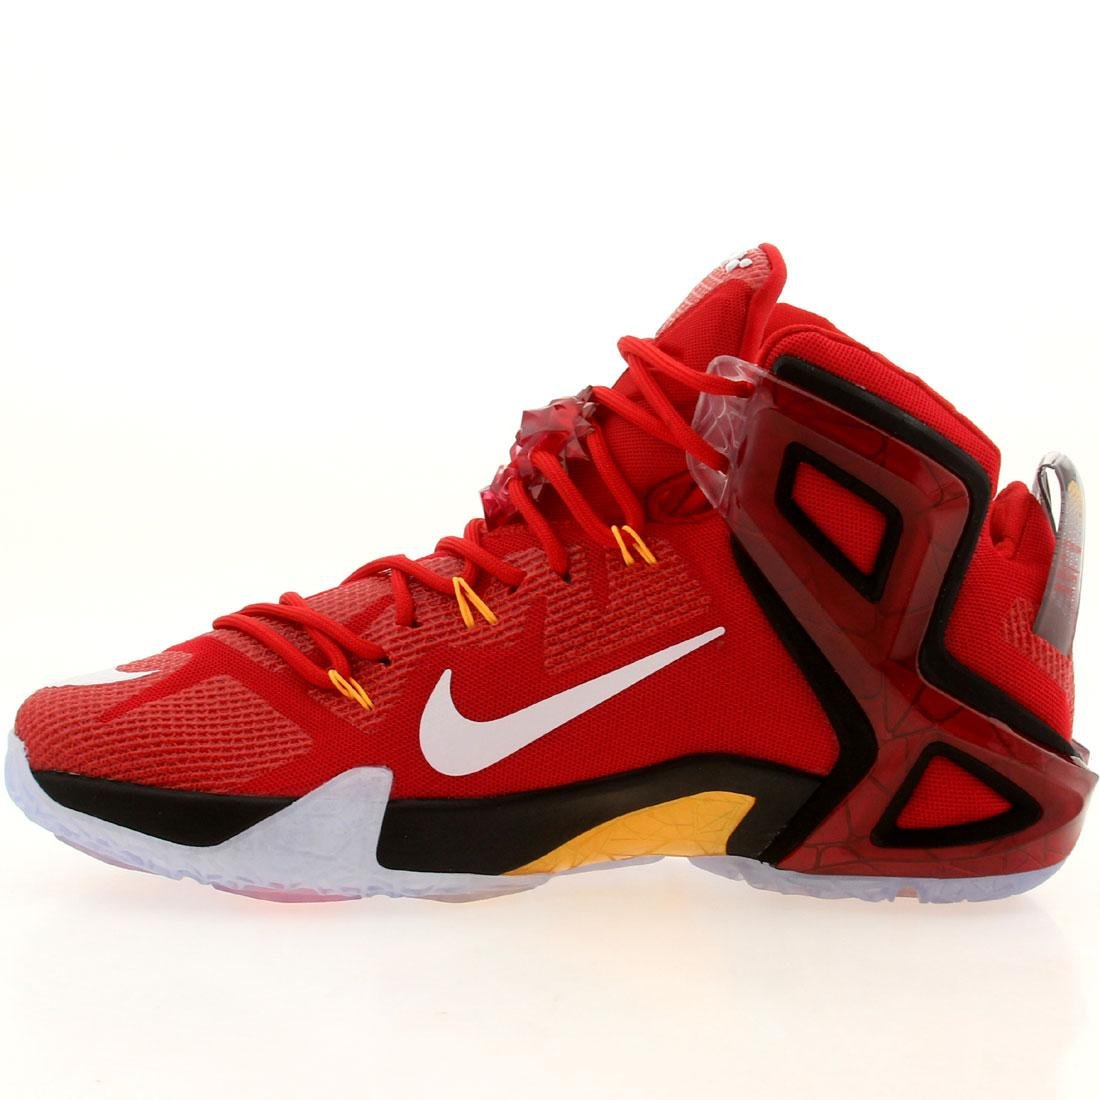 6404a9db2981a Amazon.com  Nike Lebron 12 Elite - 724559 618  Clothing